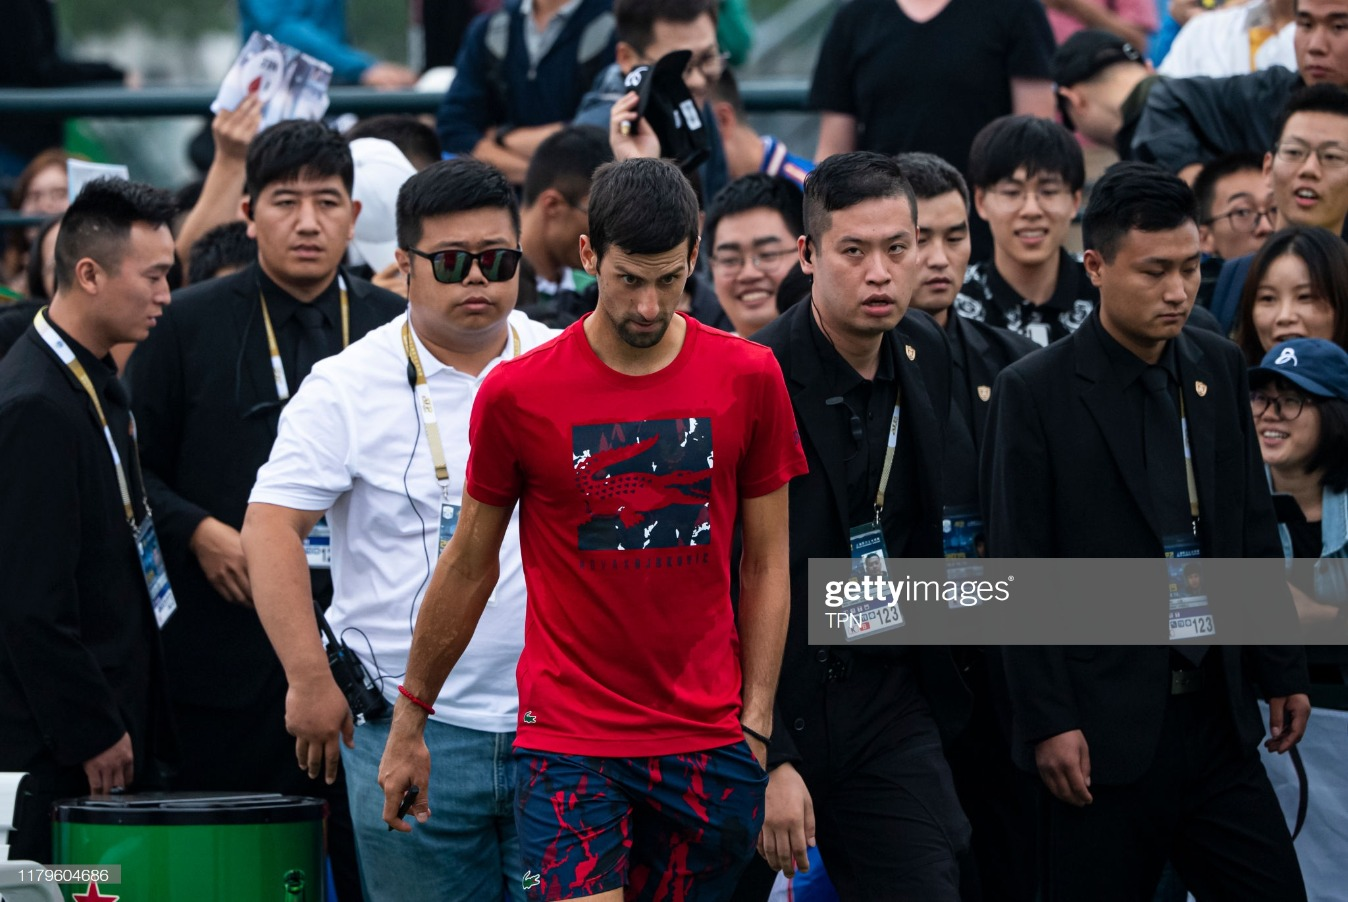 2019 Rolex Shanghai Masters - Day 3 : News Photo